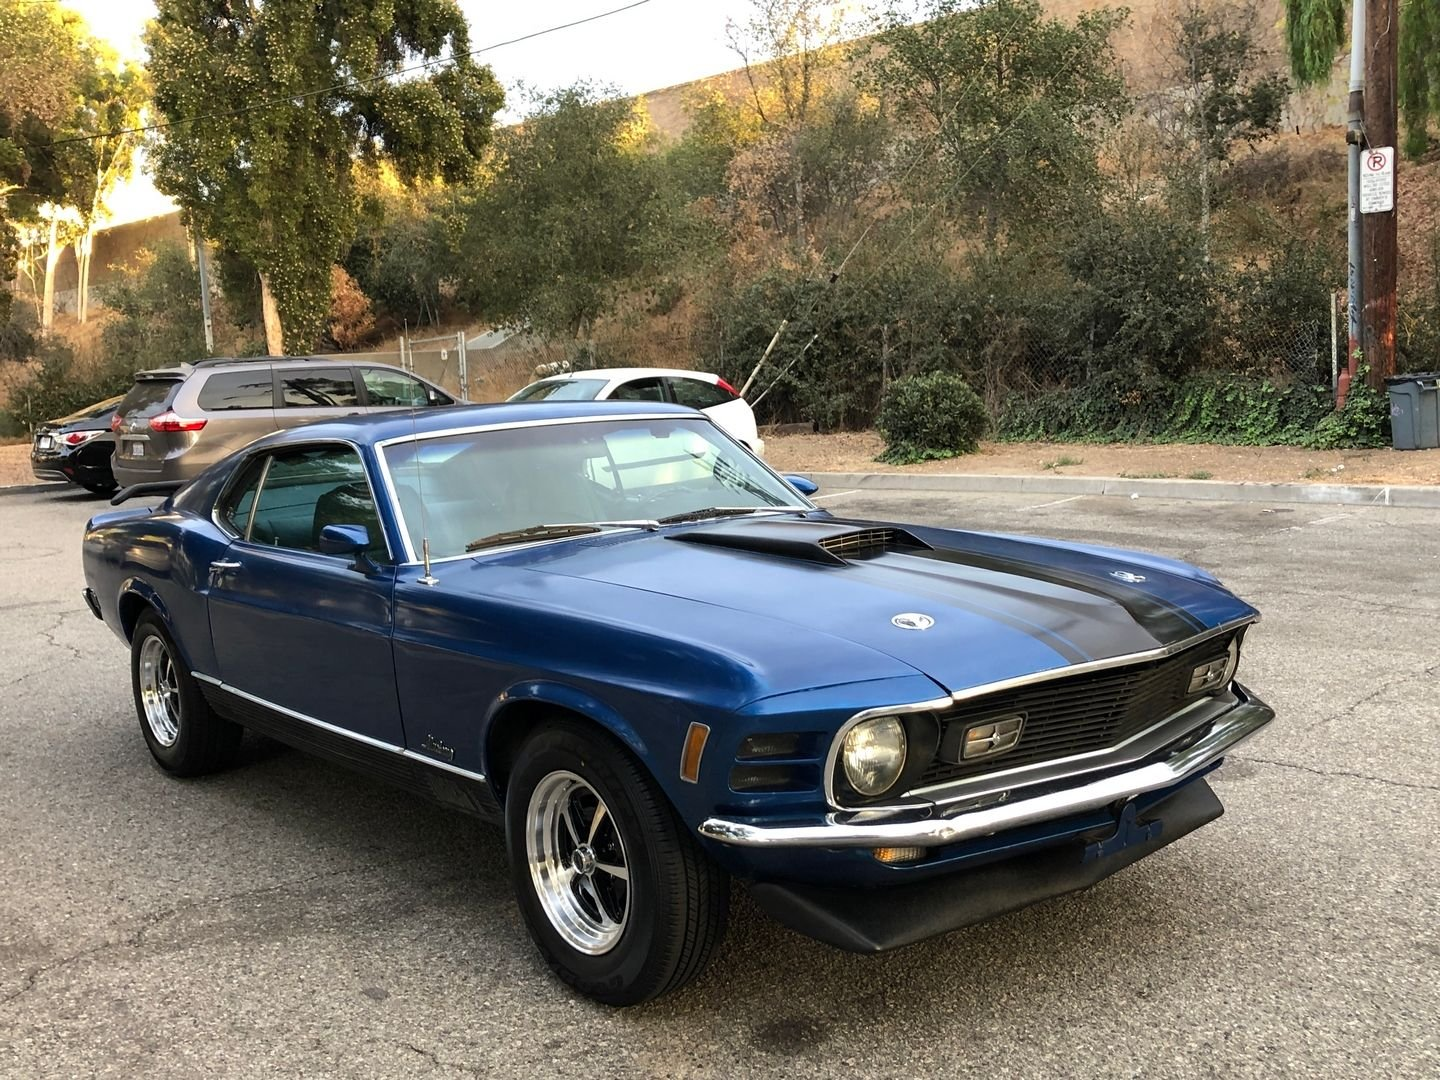 1970 Ford Mustang Fastback Mach 1